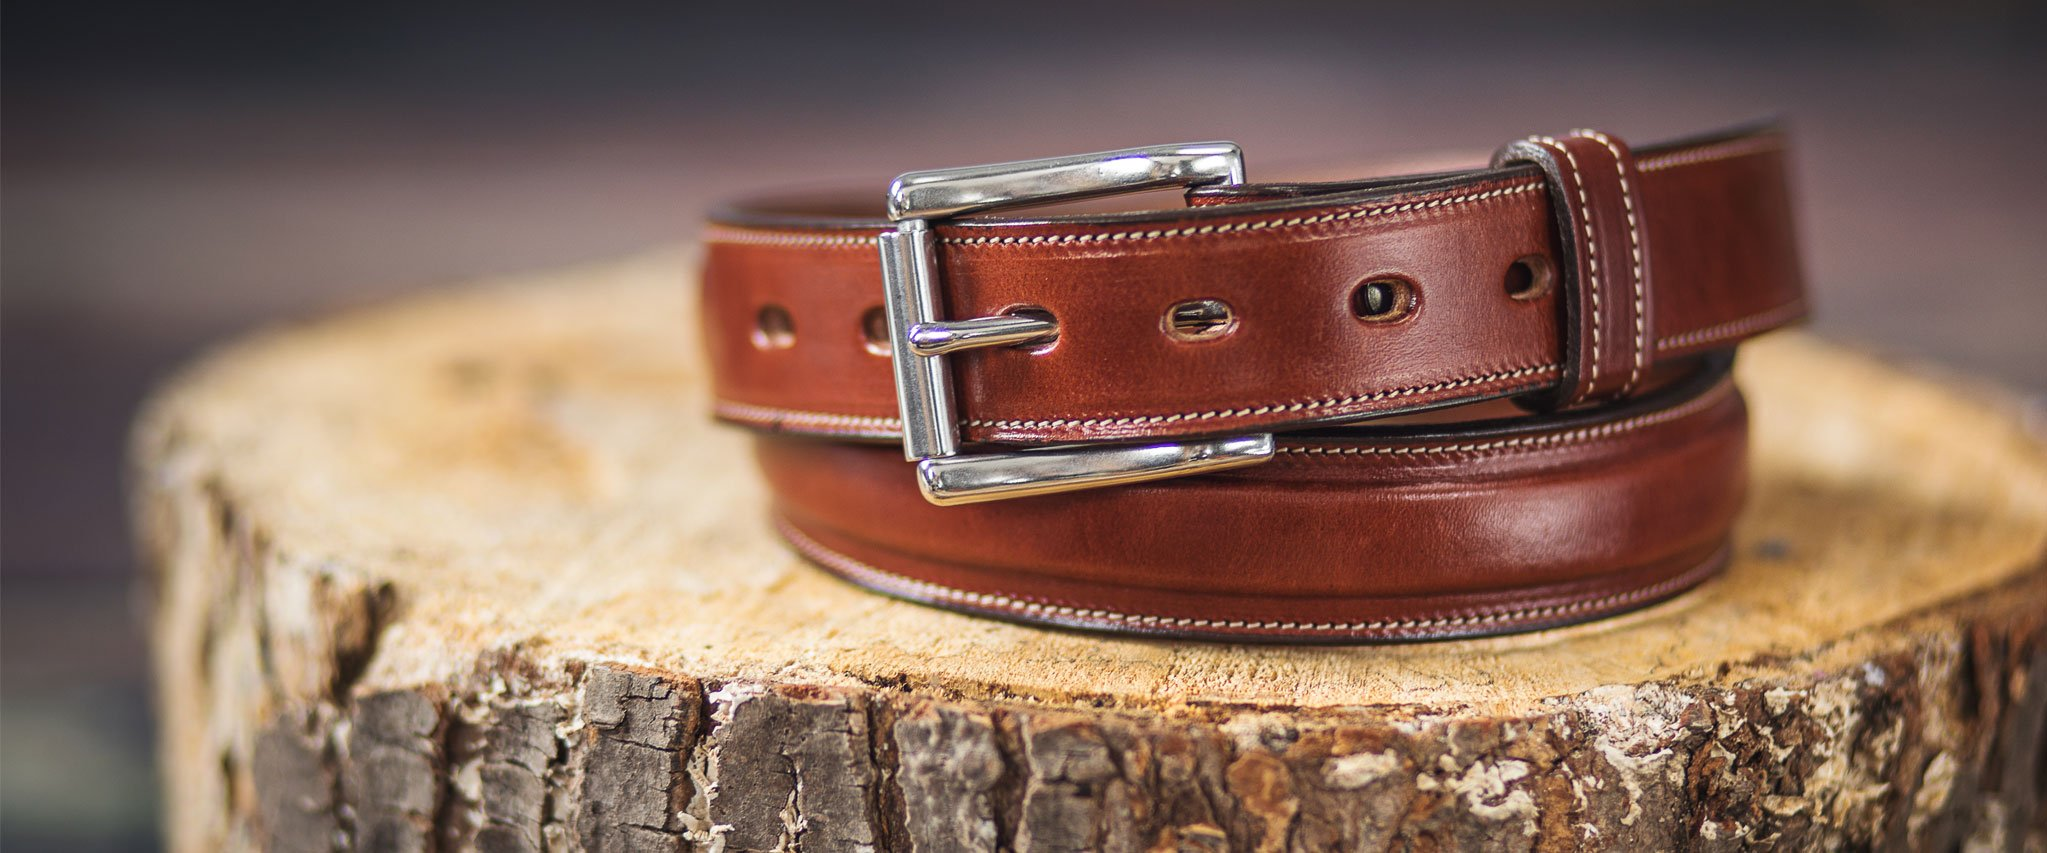 Hanks Belts. USA Made.